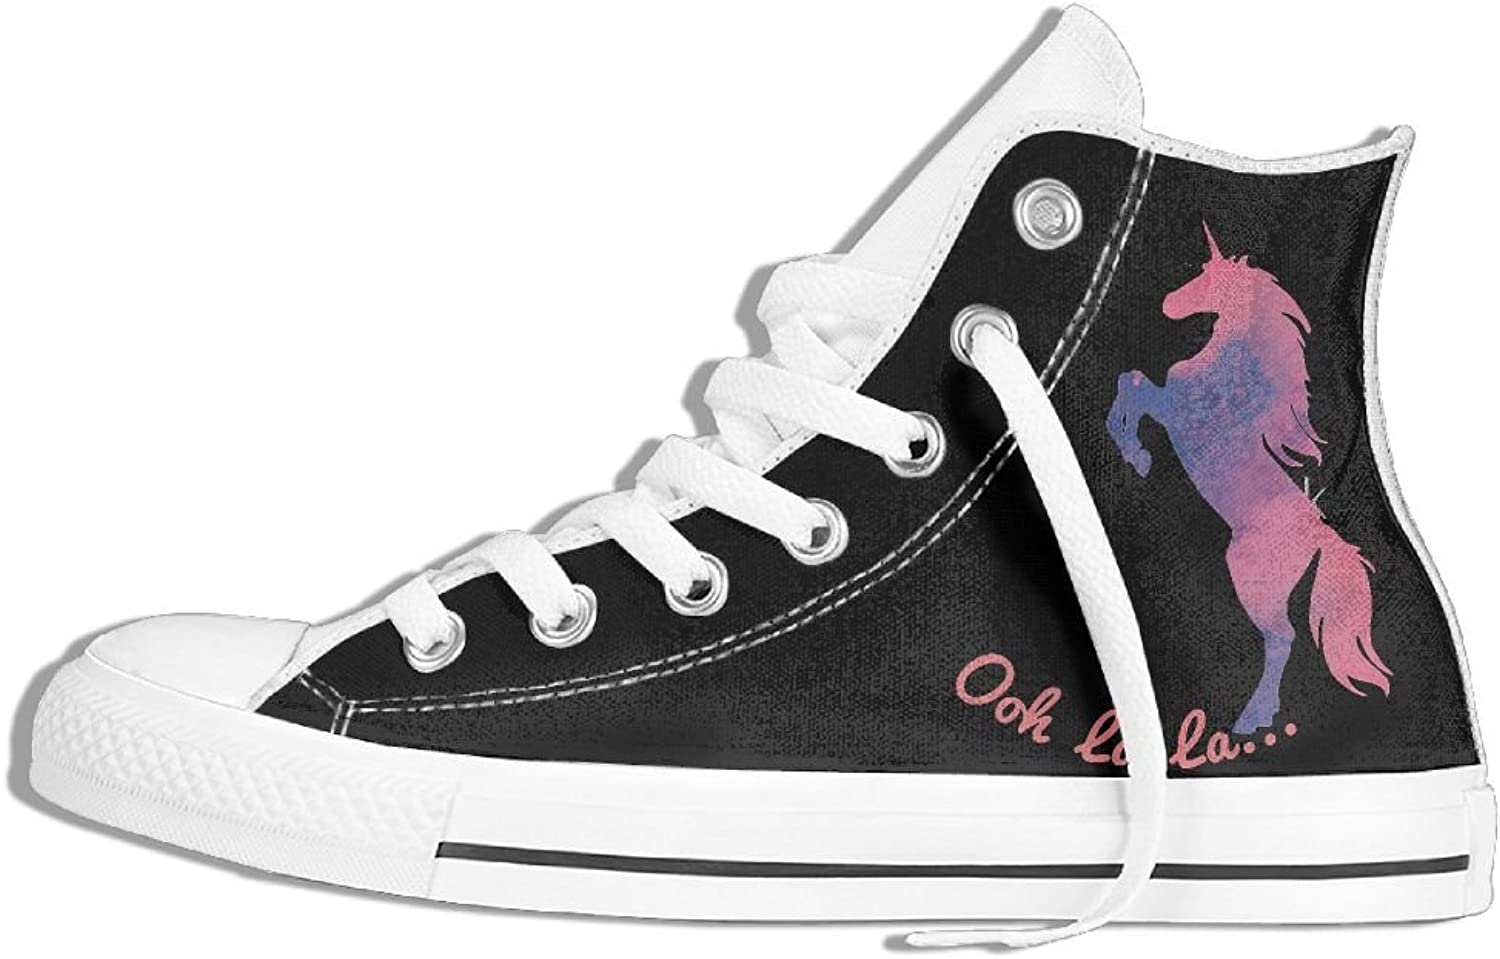 Unisex High Top Canvas Sneakers Unicorn Flat Anti-slip Walking Trainers shoes